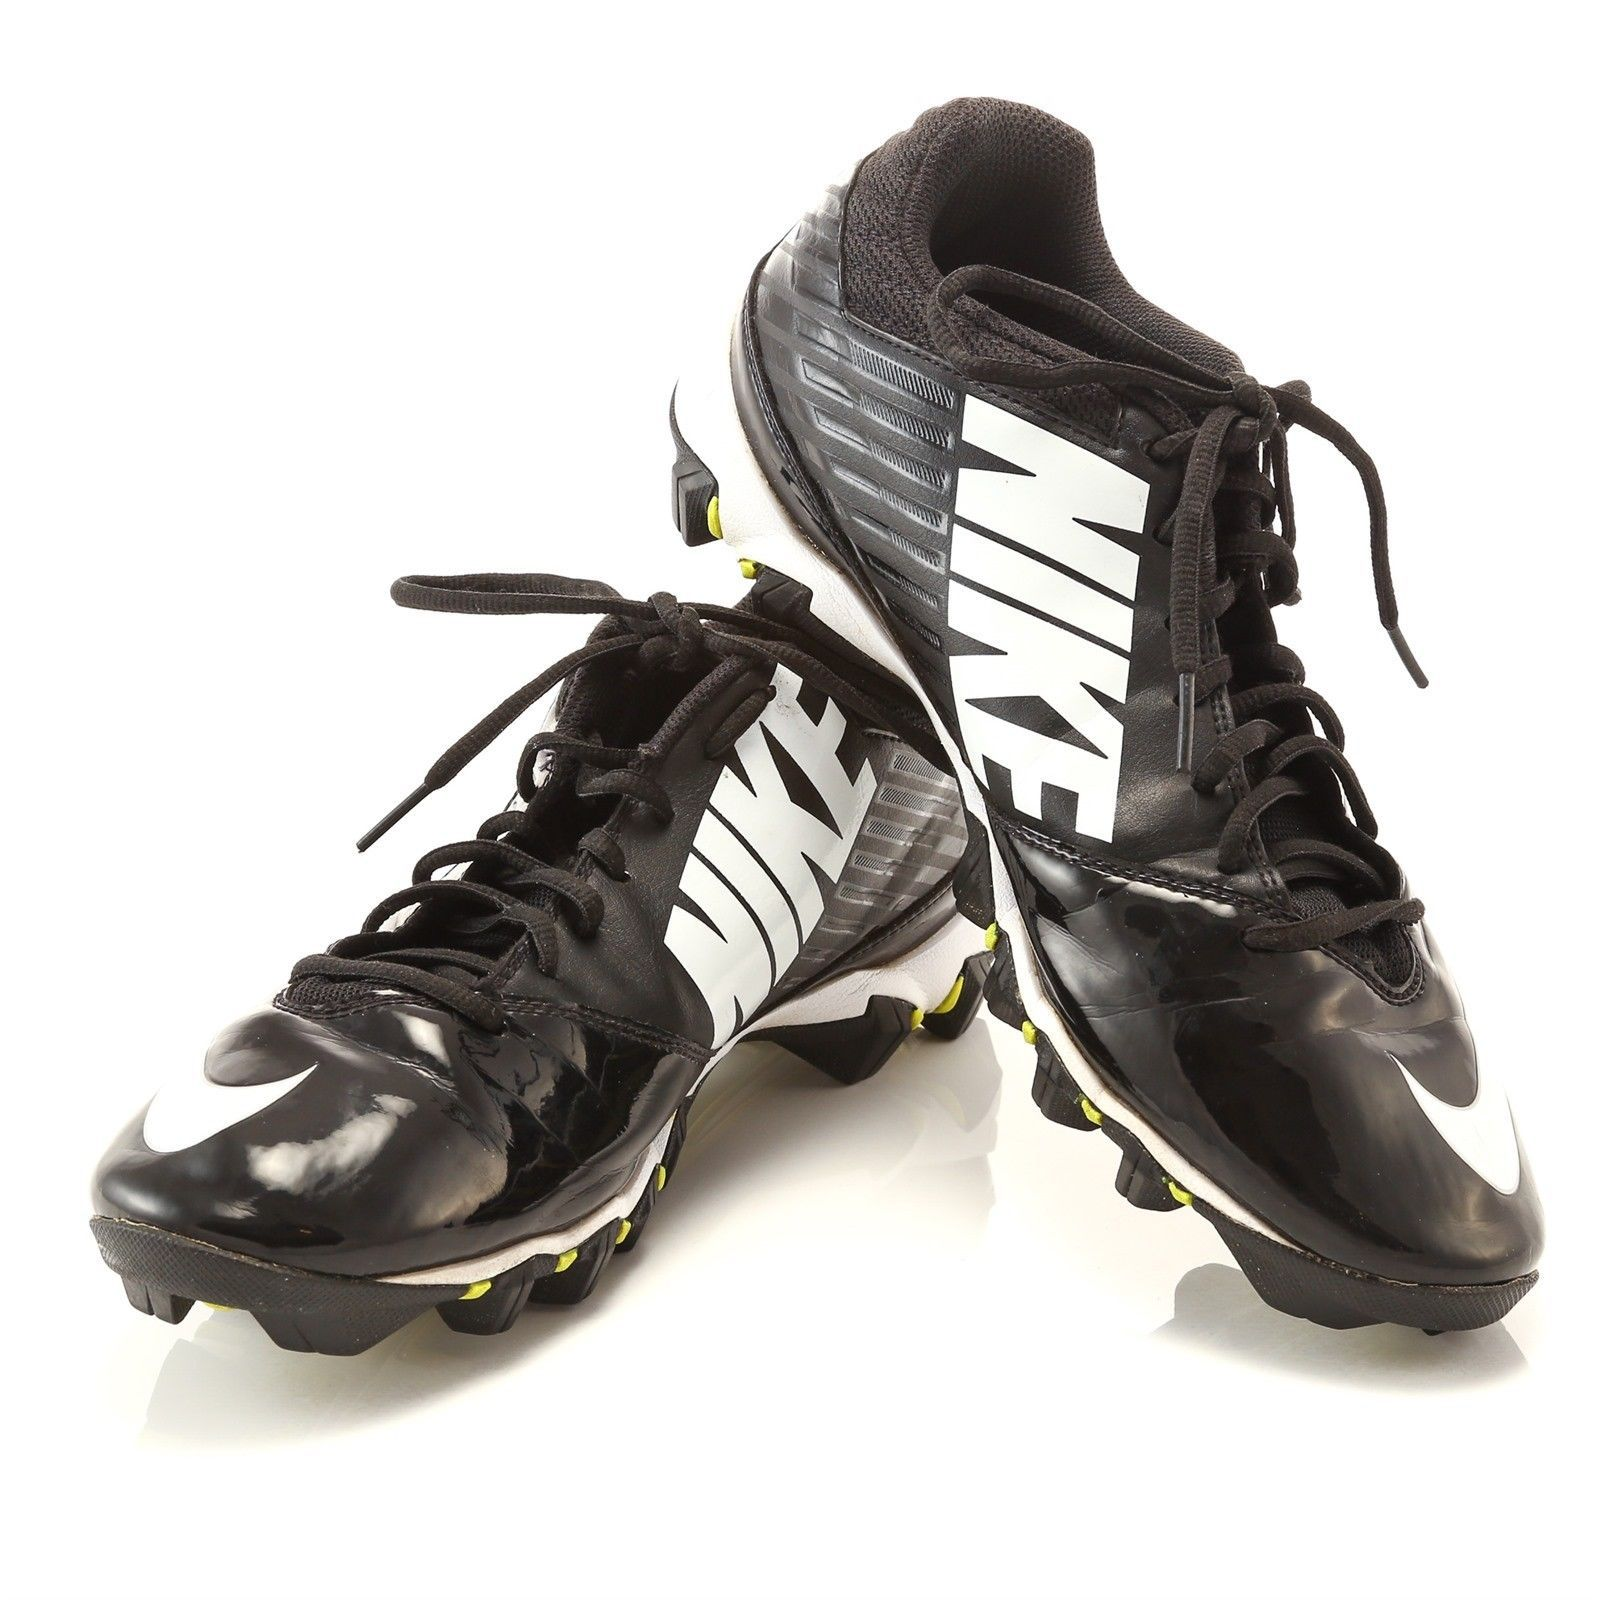 bffba3741d1 Nike Vapor Shark Black White Football Cleats and 50 similar items. 57